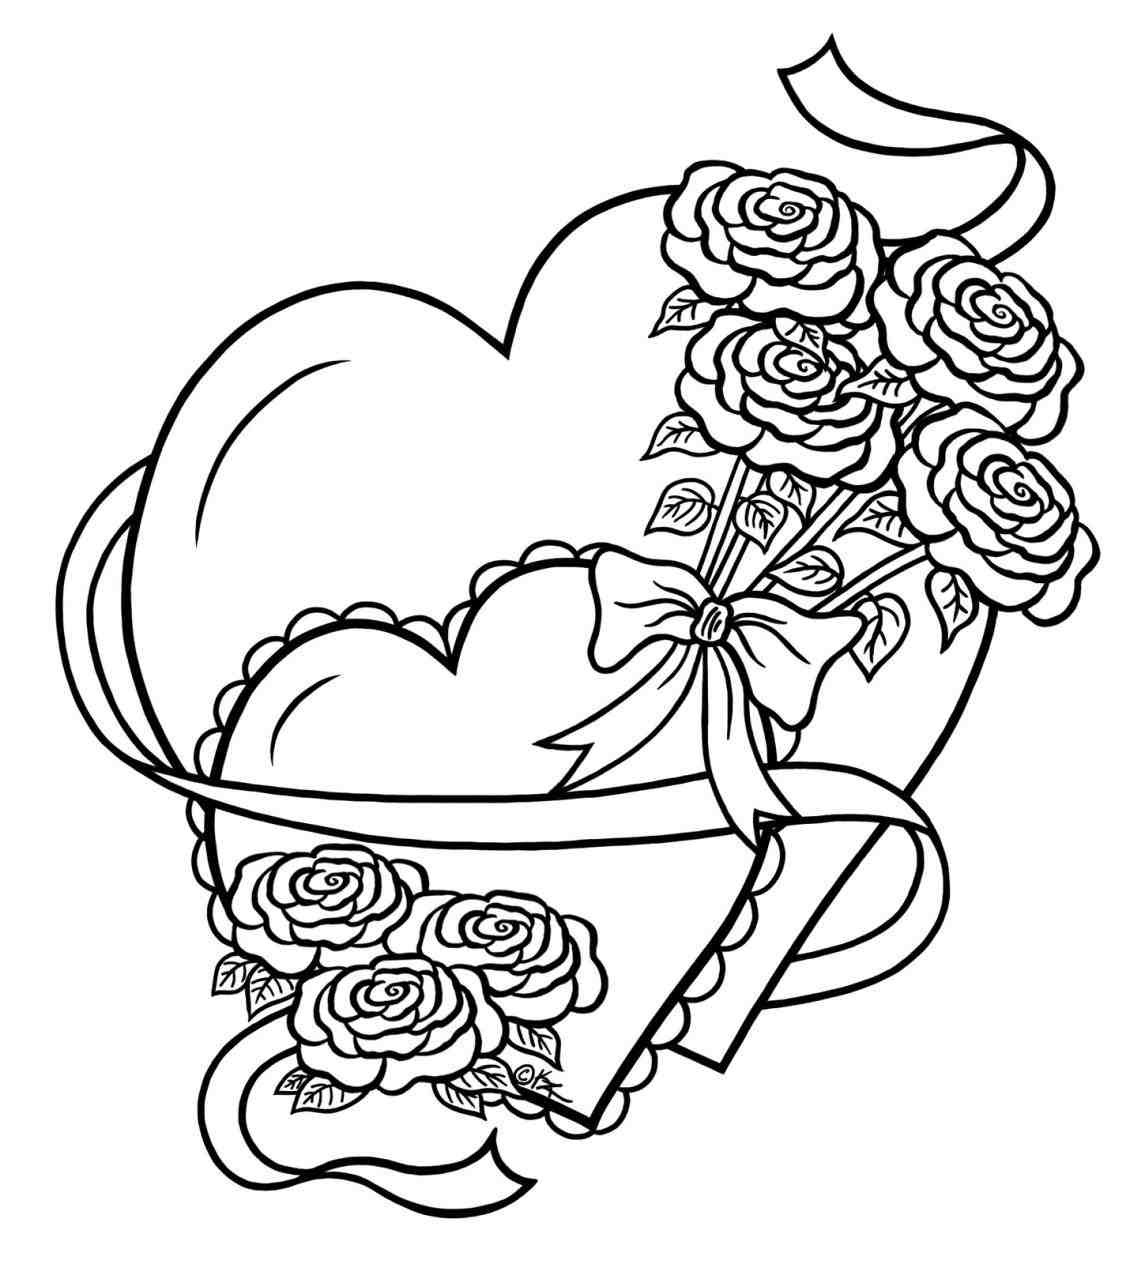 1145x1264 Beautiful Drawings Of Hearts And Roses